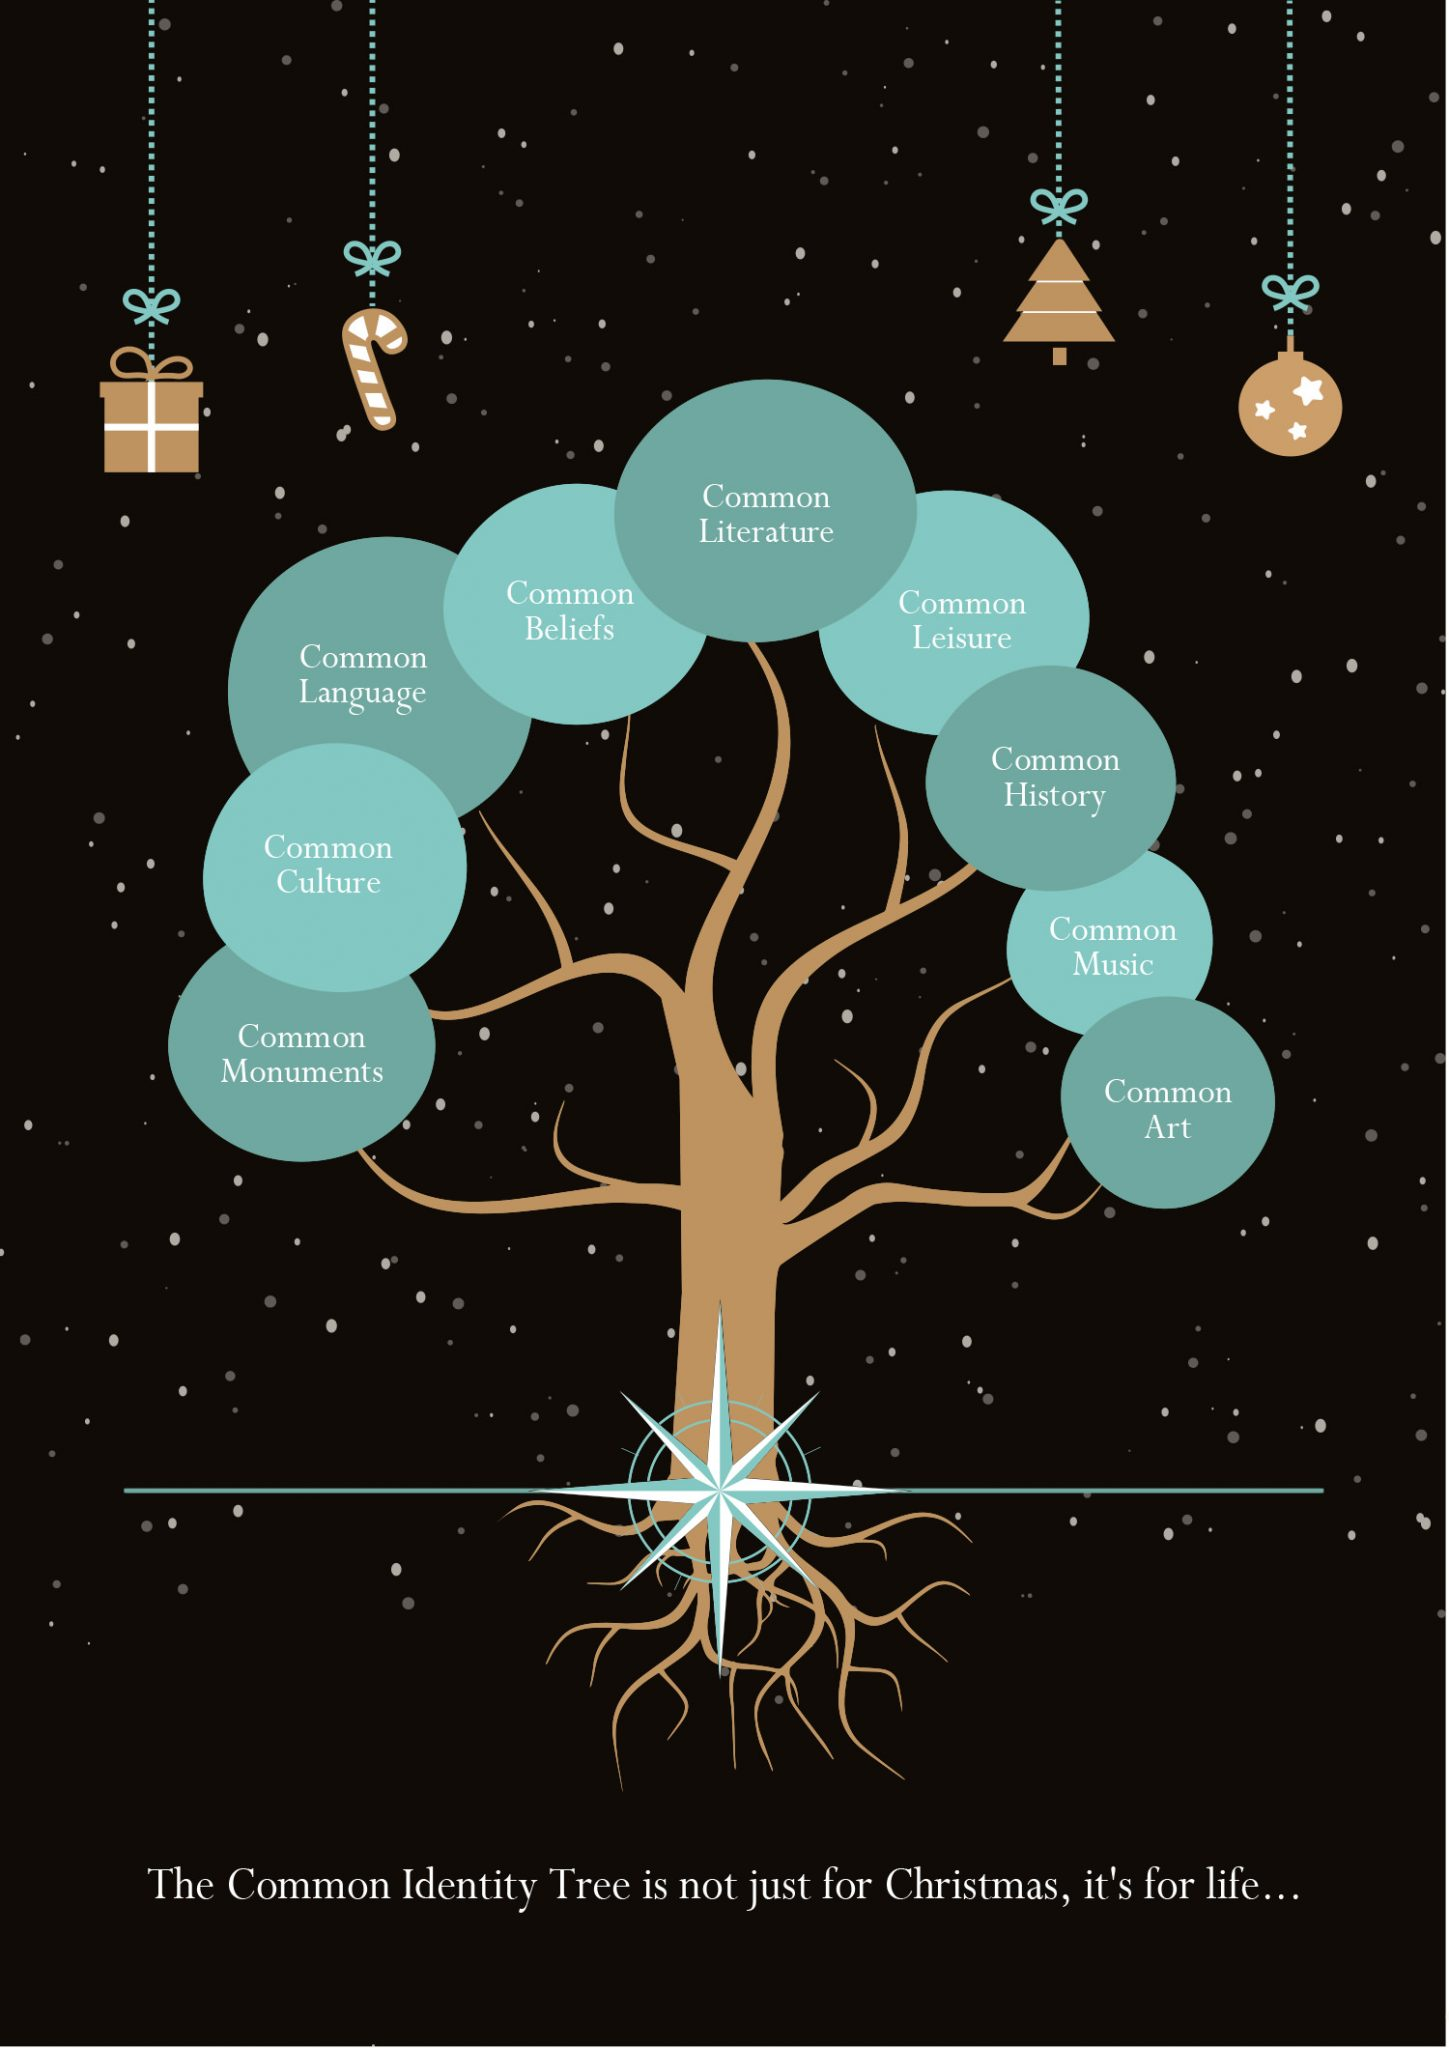 The Common Identity Tree is not just for Christmas, it's for life....